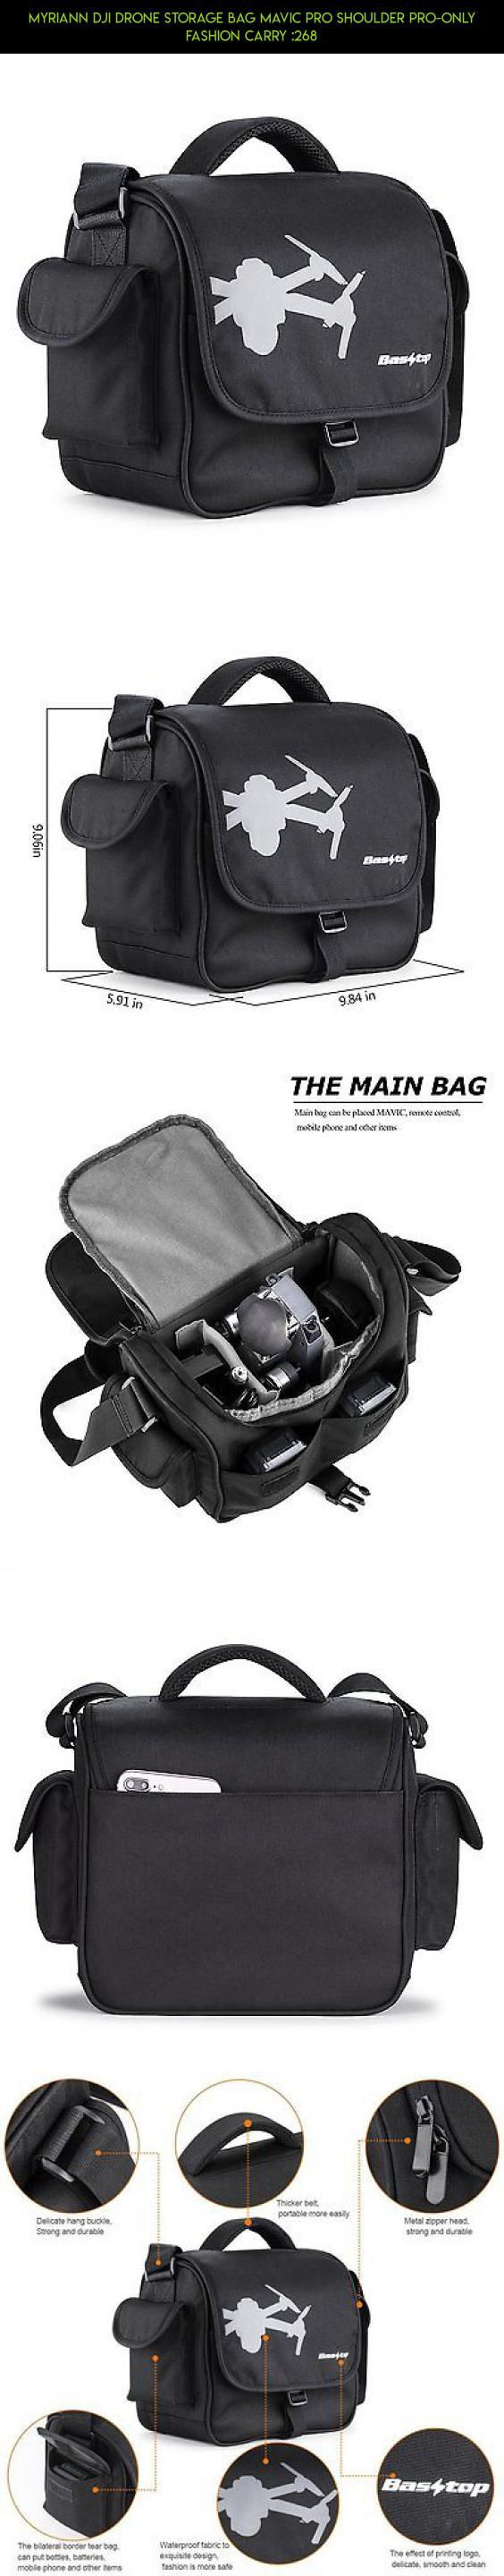 MYRIANN DJI drone storage bag Mavic Pro shoulder Pro-only fashion carry :268 #drone #drone #pro #shopping #camera #technology #parts #plans #mavic #racing #fpv #gadgets #tech #kit #products #only